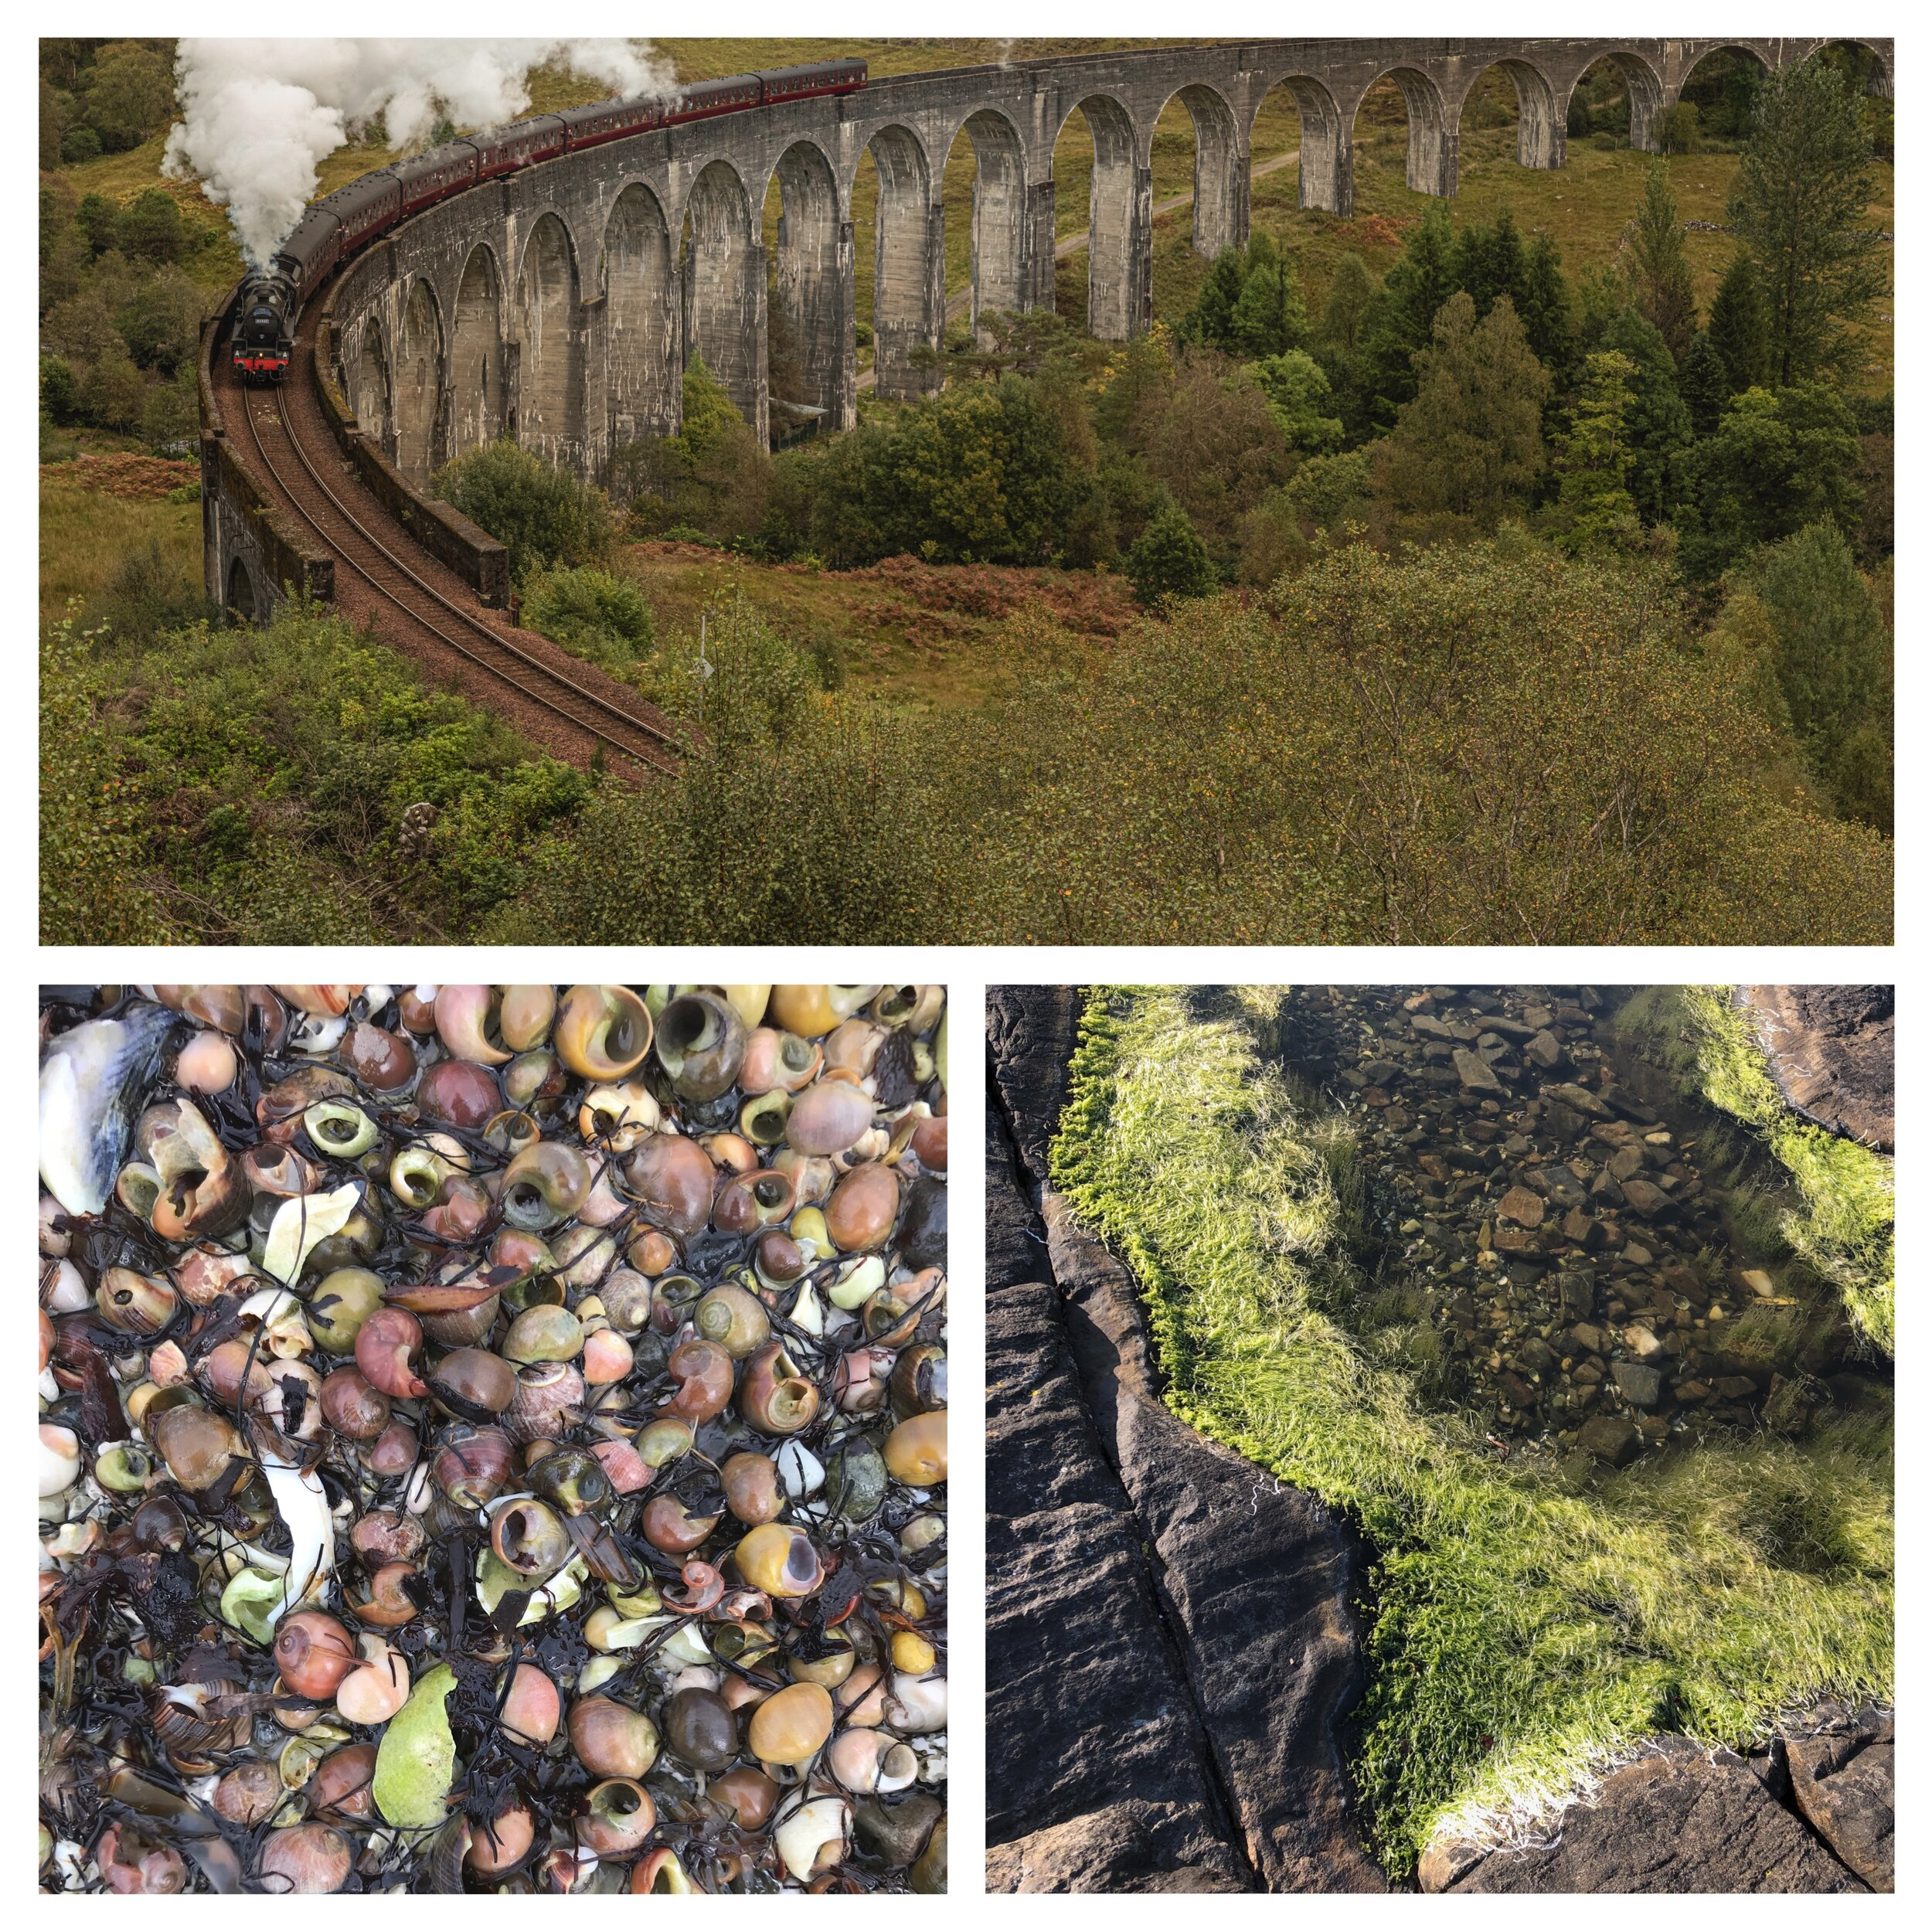 Jacobite steam train going over the Glenfinnan viaduct.